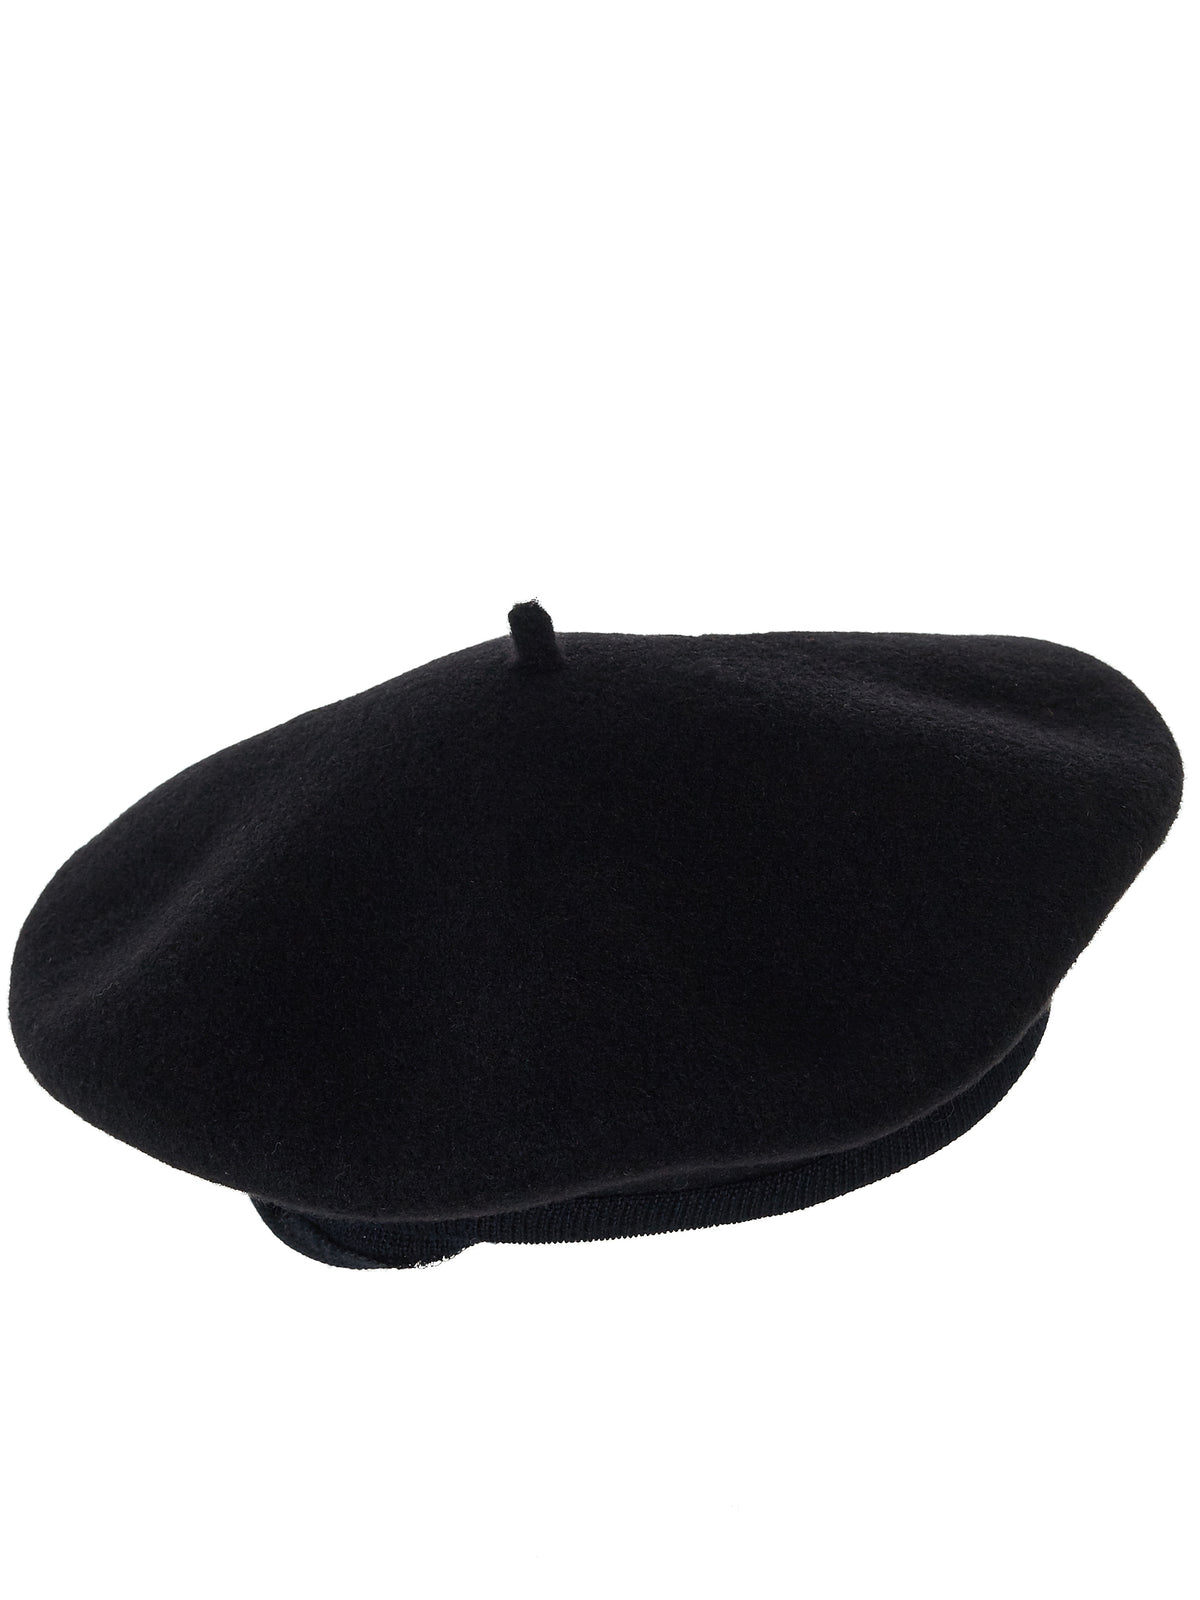 'Flying Duck' MT-11 Beret (FLYING-DUCK-MT-11-BLACK)